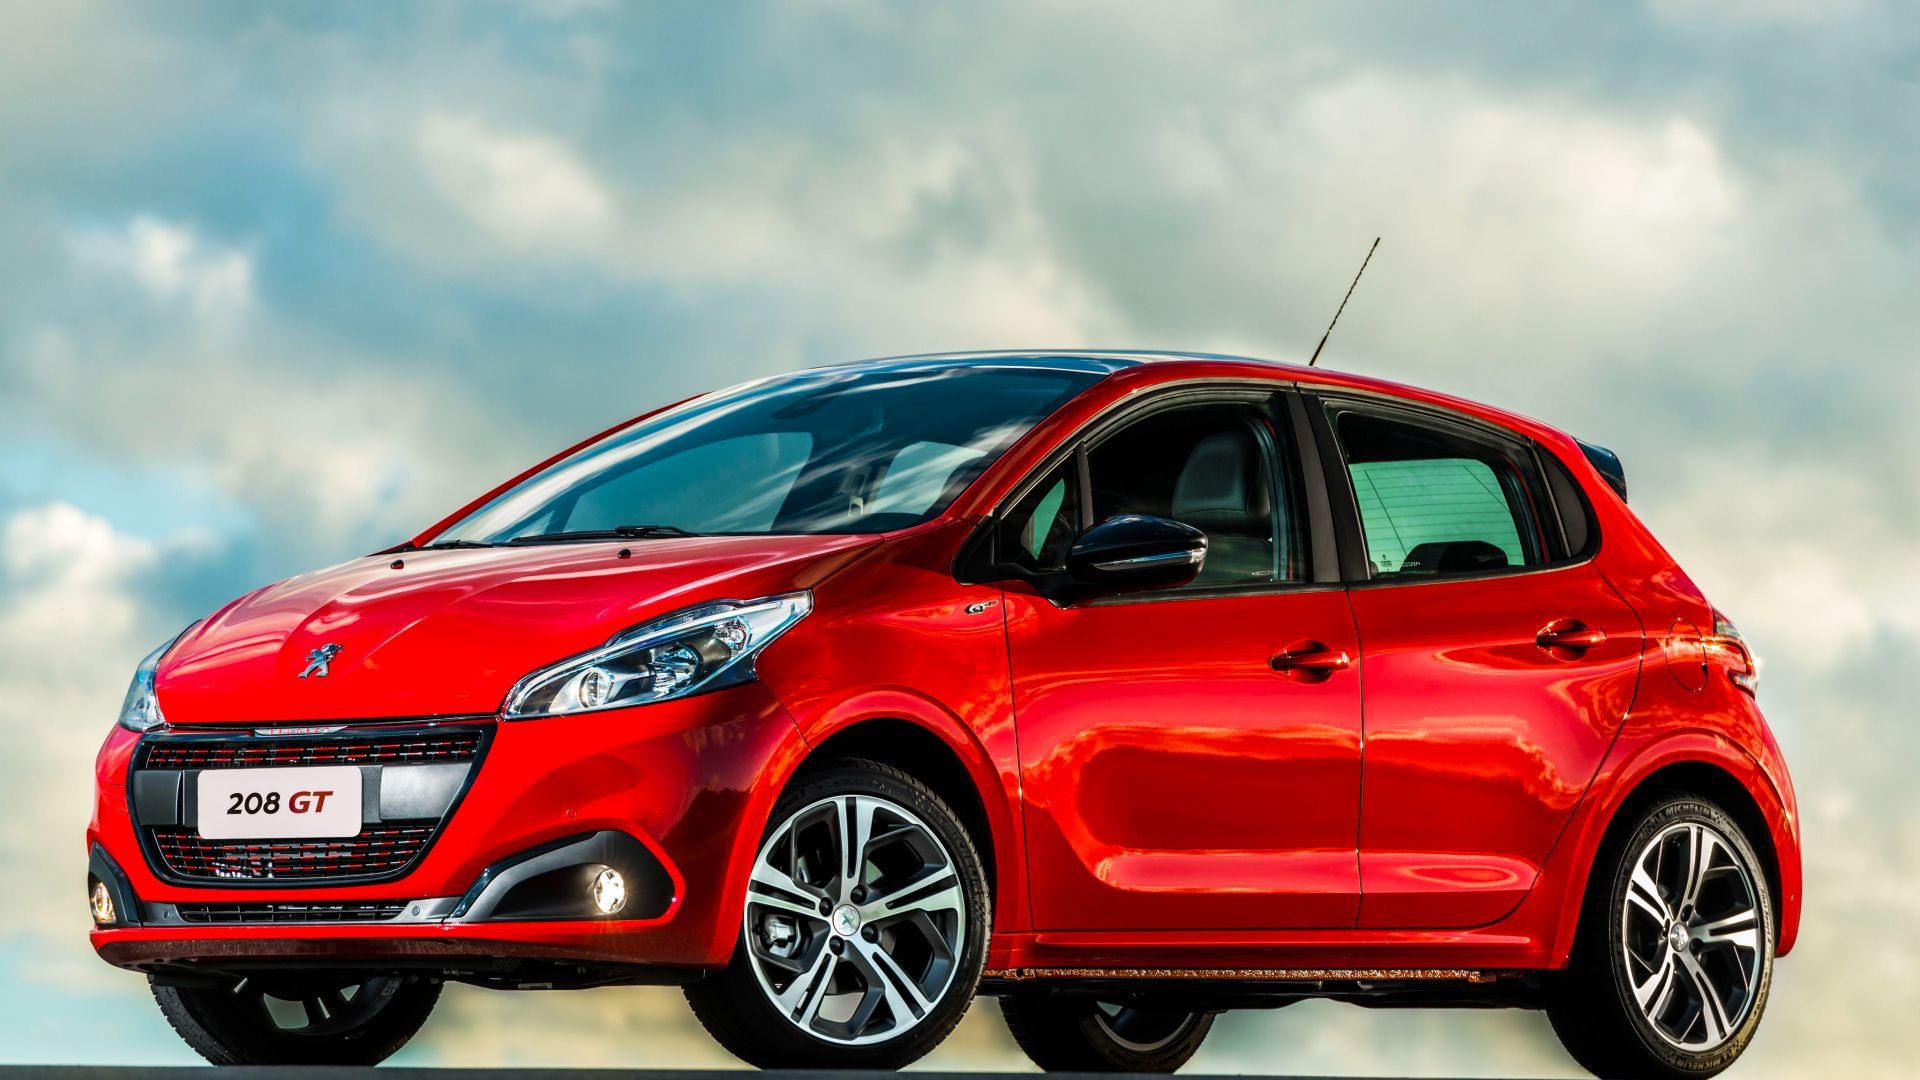 wallpaper peugeot 208 gt hatchback red clouds cars. Black Bedroom Furniture Sets. Home Design Ideas